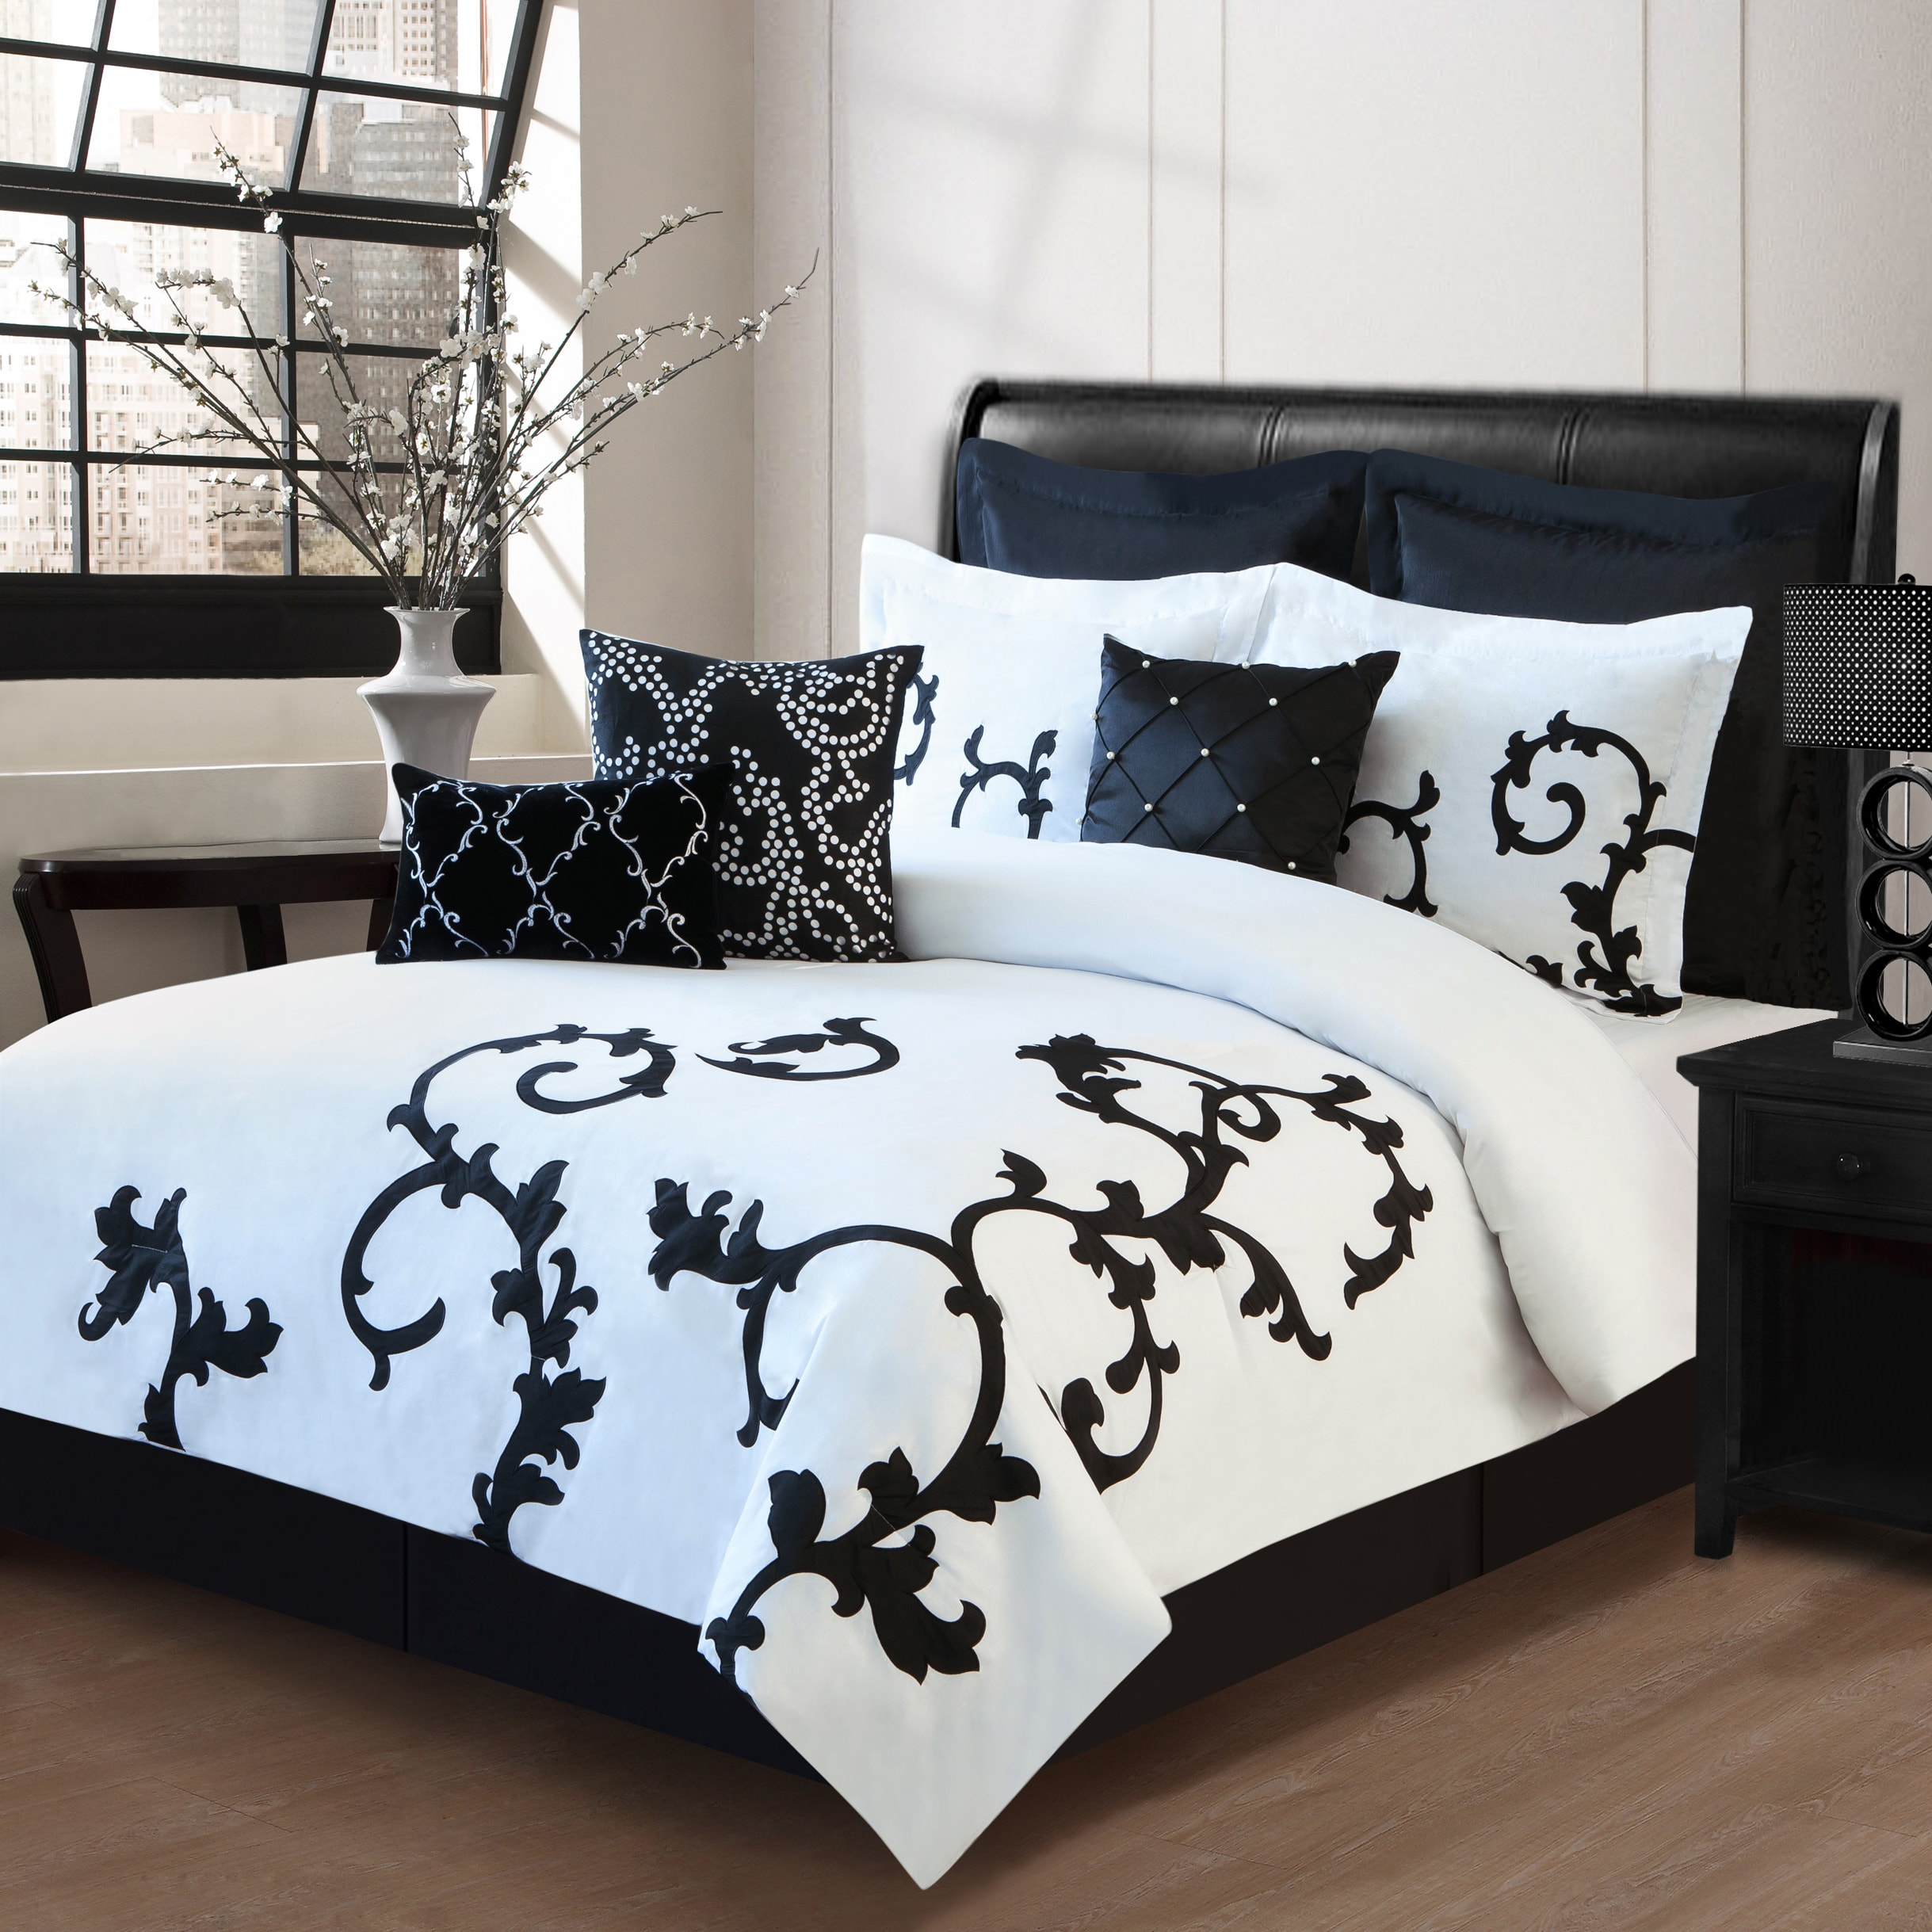 floral home essential dorm p set piece comforter spin xl room prod medallion qlt bedding hei twin wid